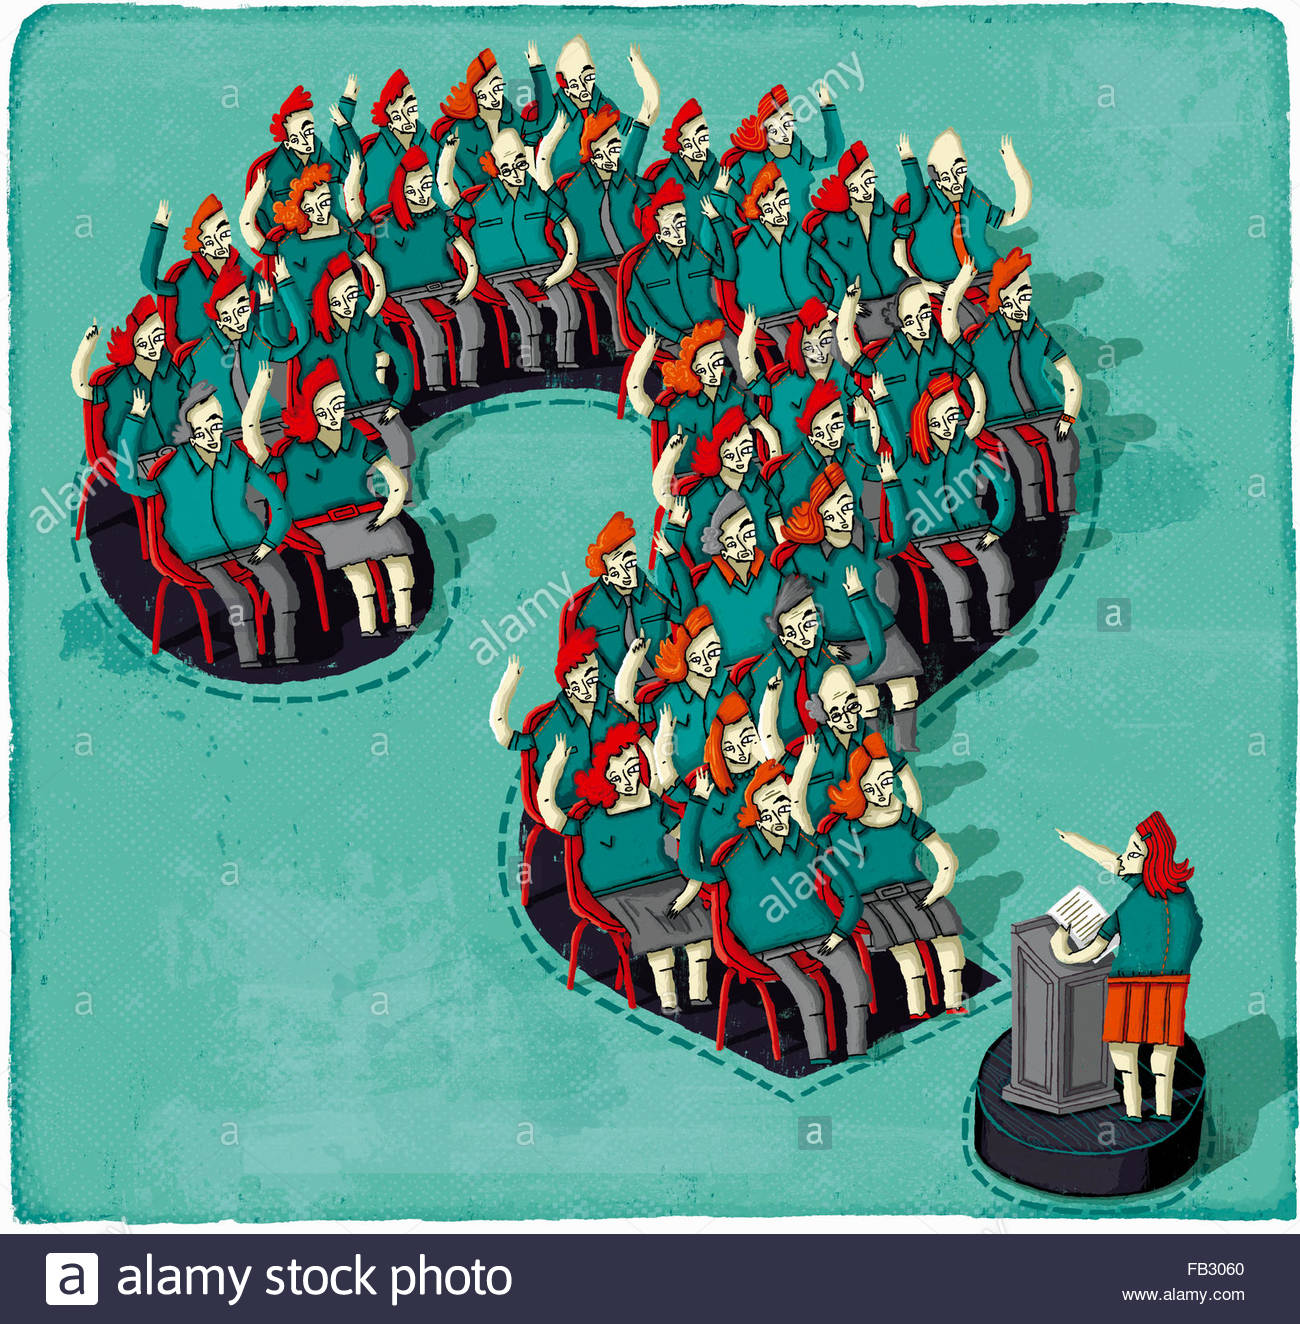 Public speaker and audience in question and answer session inside of question mark - Stock Image